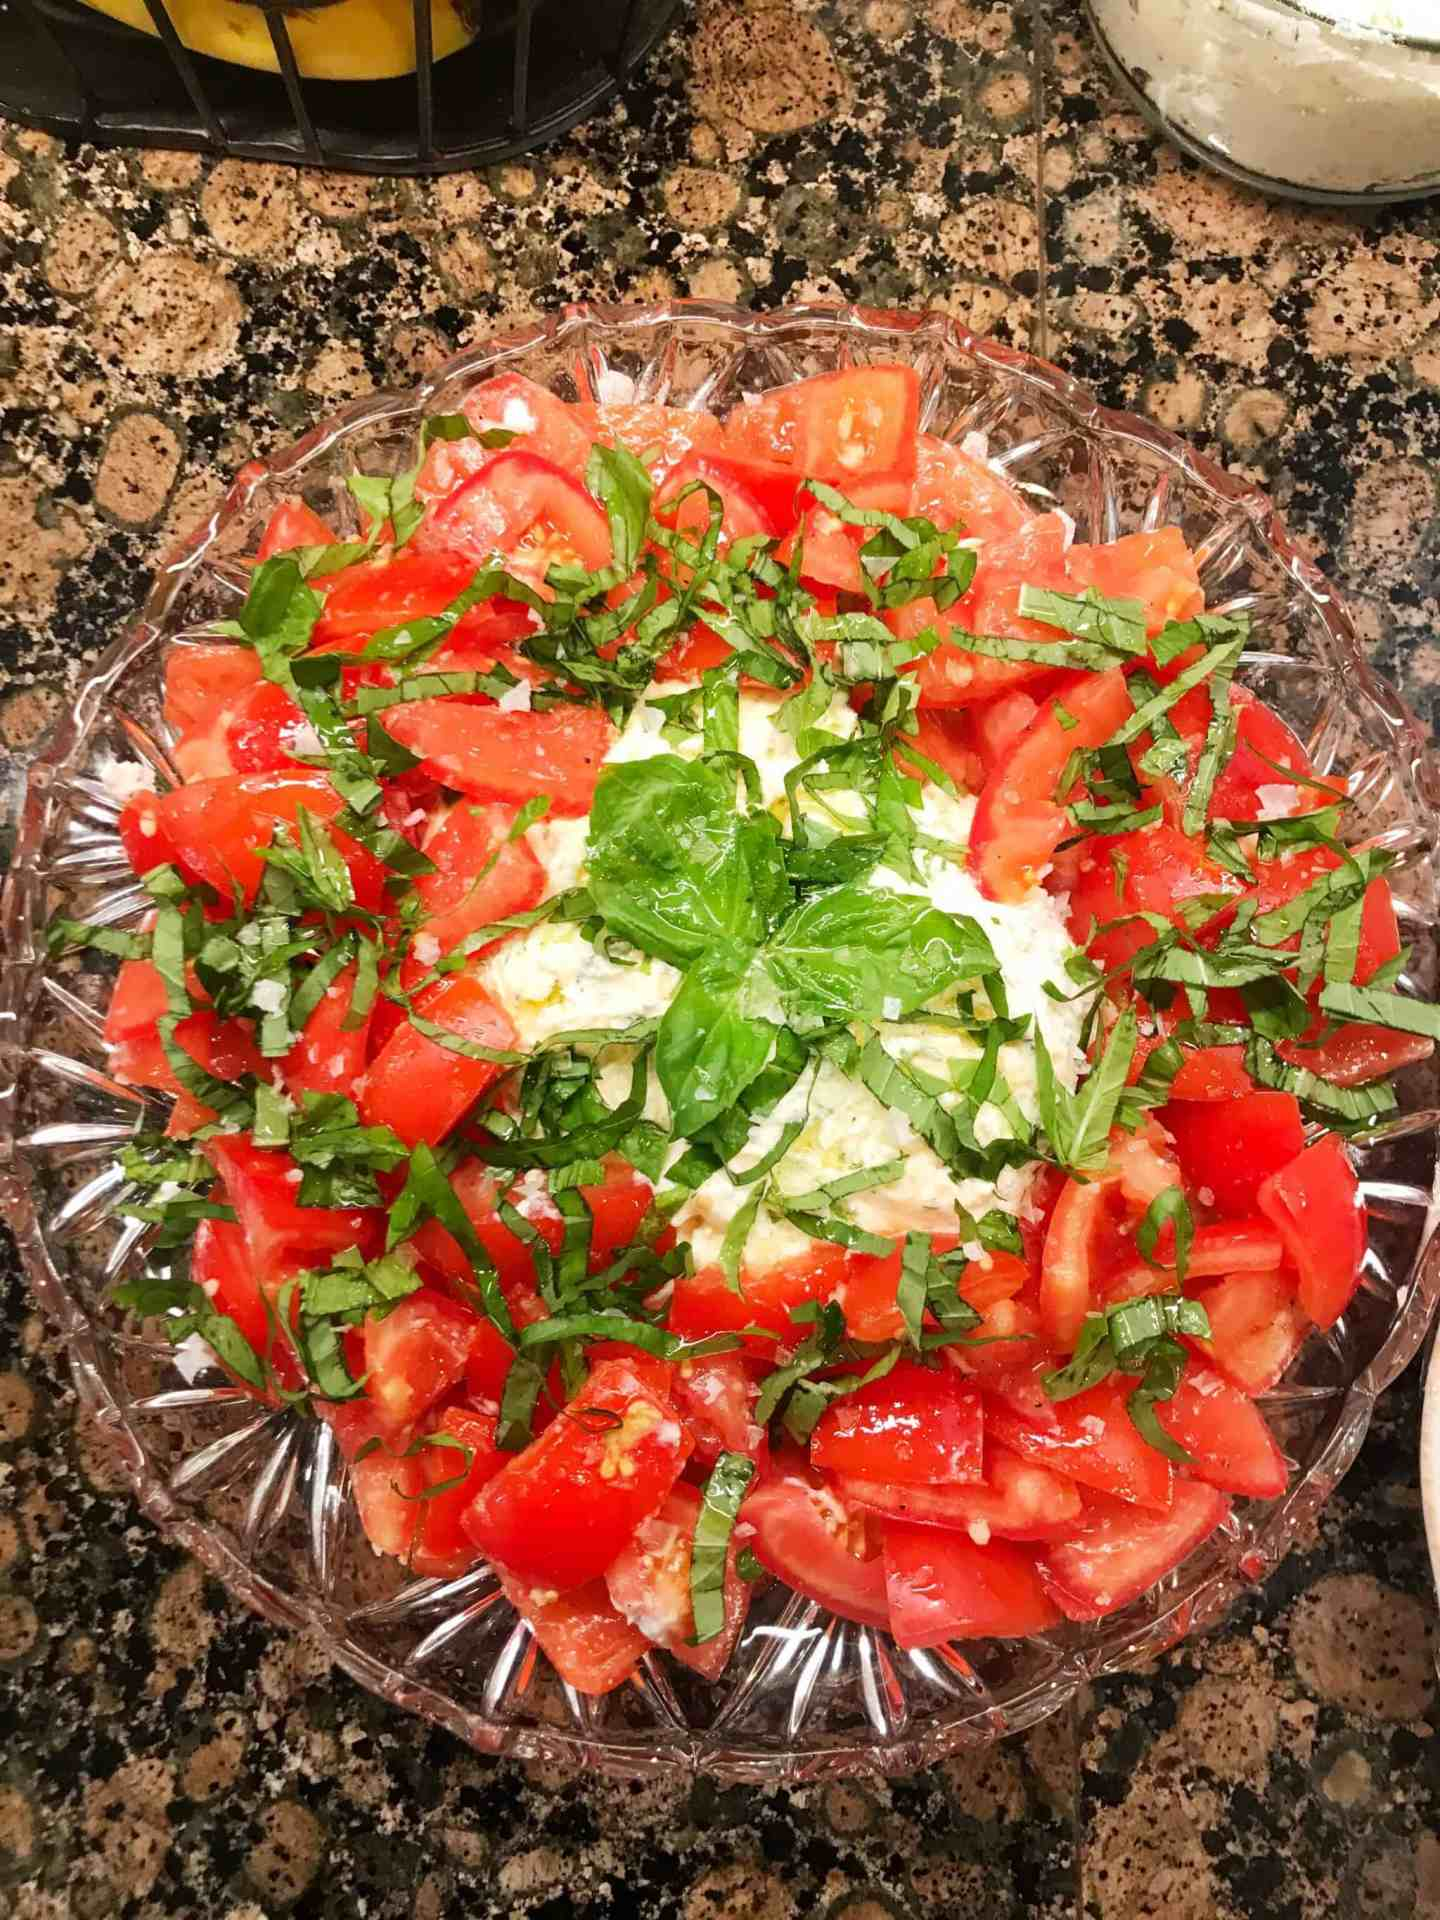 Barefoot Contessa Cook Like a Pro Herbed Ricotta and Tomato Salad